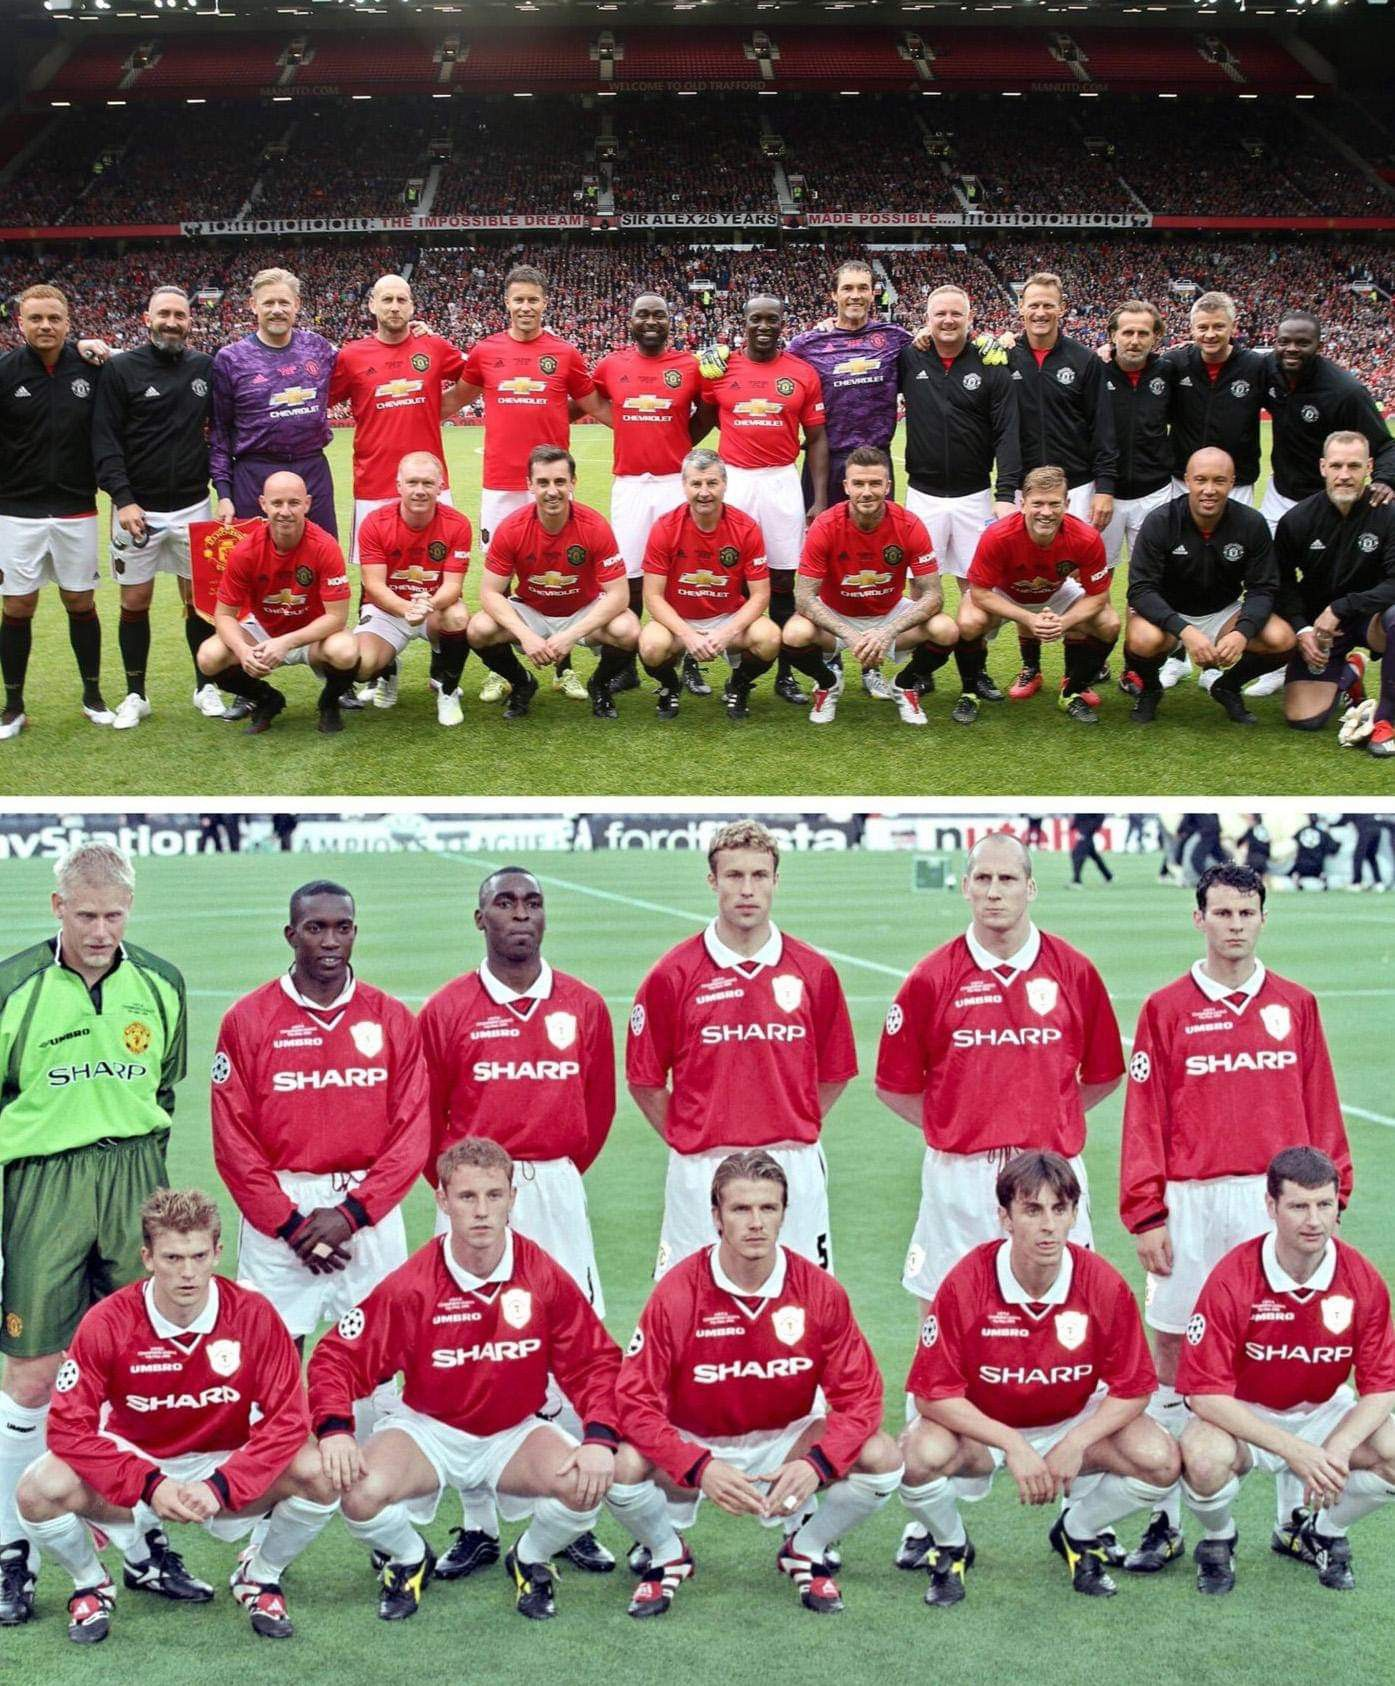 Now And Then Treble99 The Treble Reunion 26 5 2019 Ko 3 Pm Old Trafford Manchester United Football Club Manchester United Wallpaper